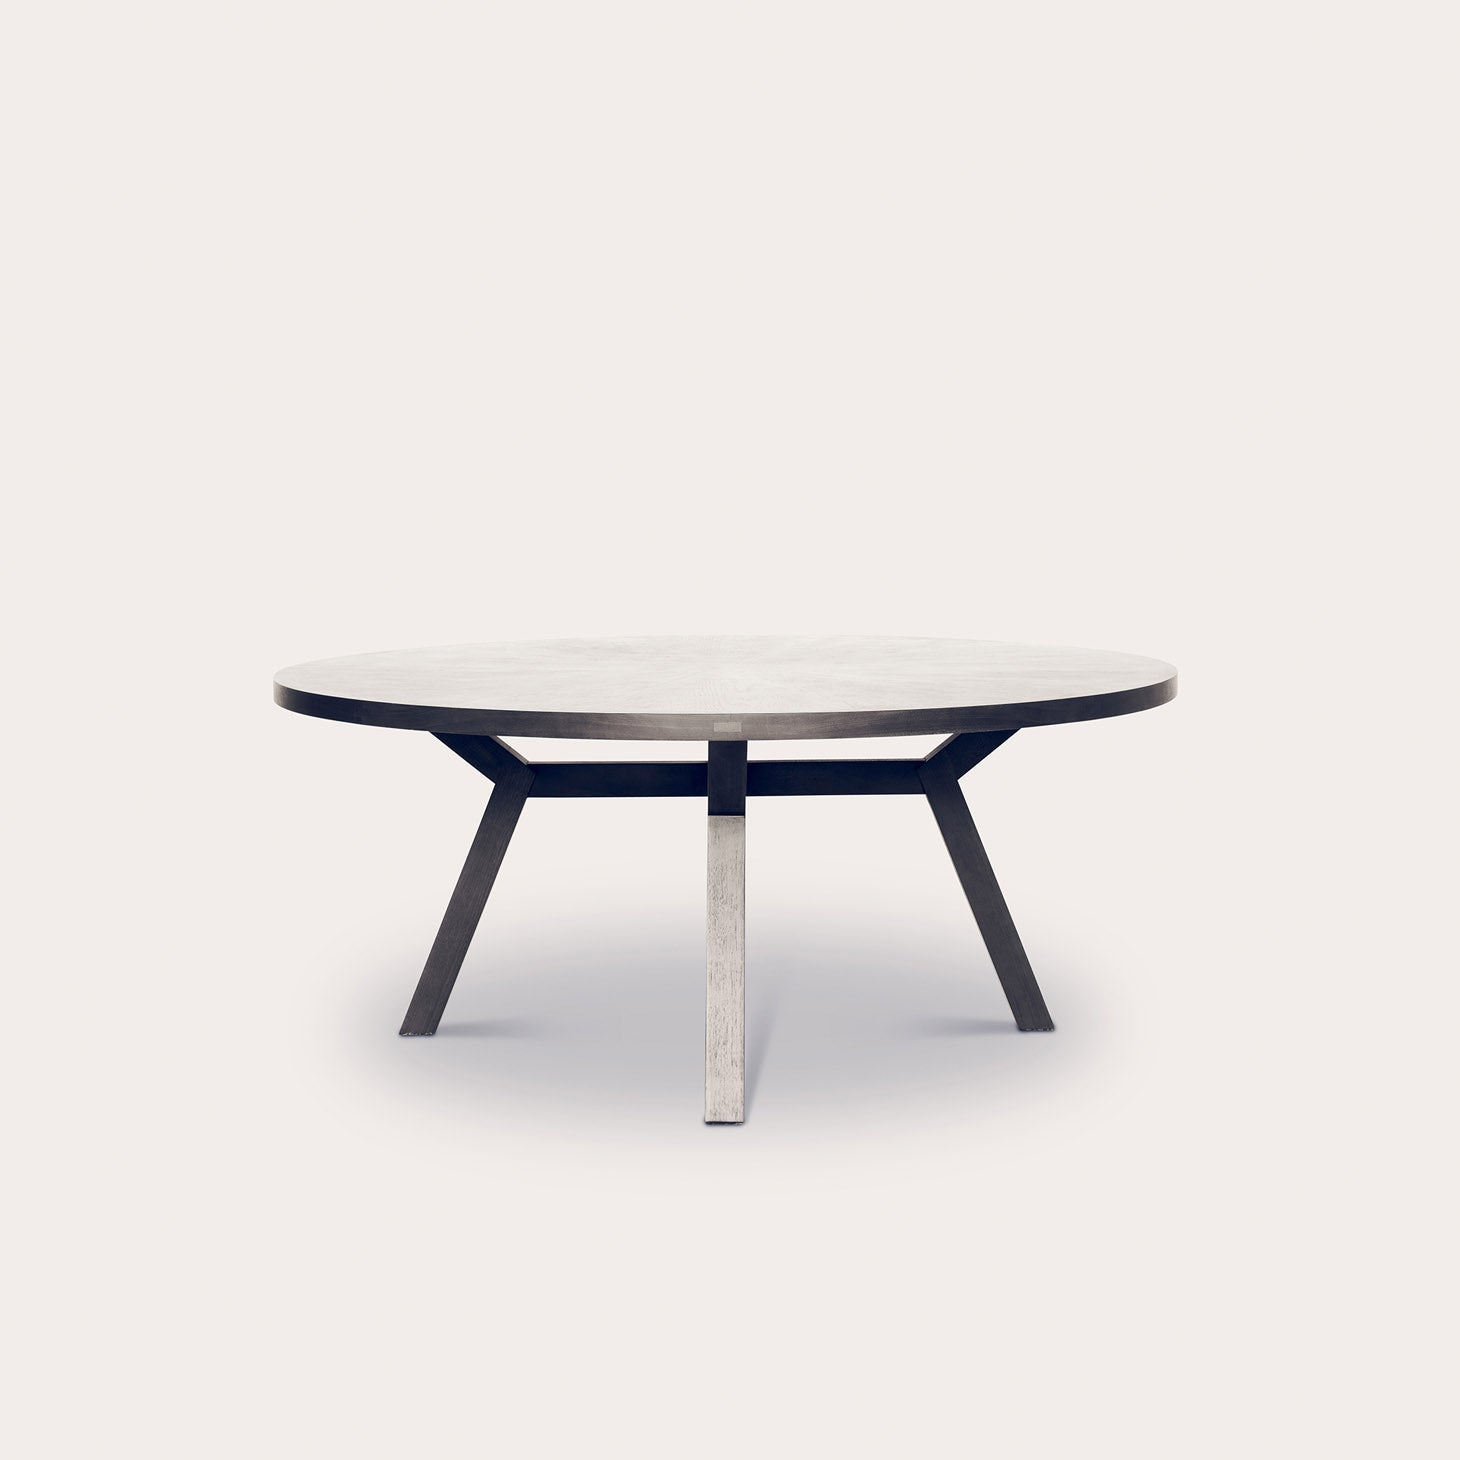 NUA Tables Christophe Delcourt Designer Furniture Sku: 008-230-10420